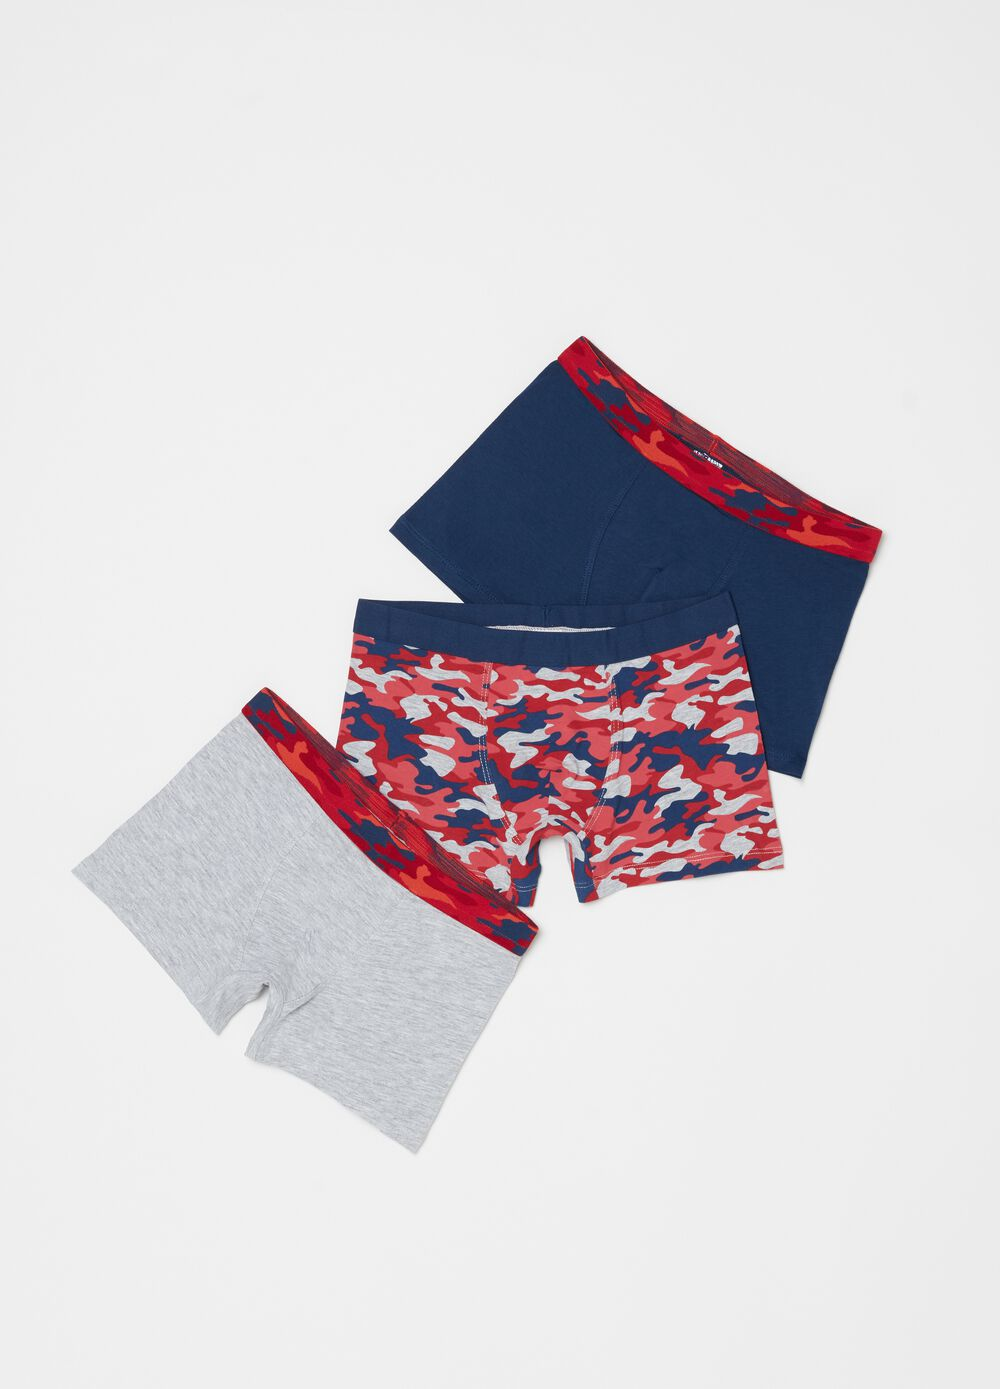 Three-pack organic cotton patterned boxer shorts